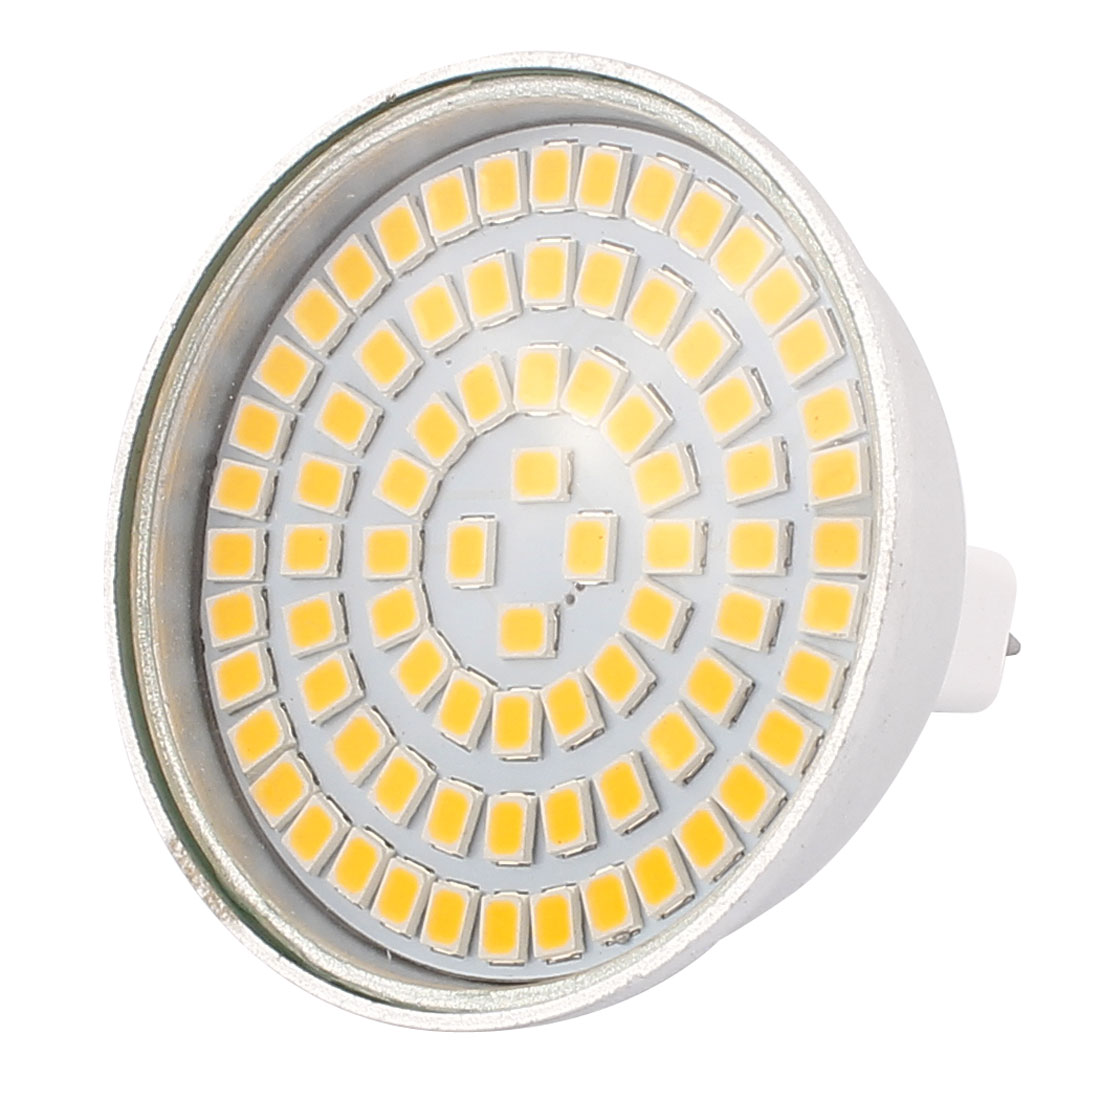 110V 8W MR16 2835 SMD 80 LEDs LED Bulb Light Spotlight Lamp Energy Save Warm White